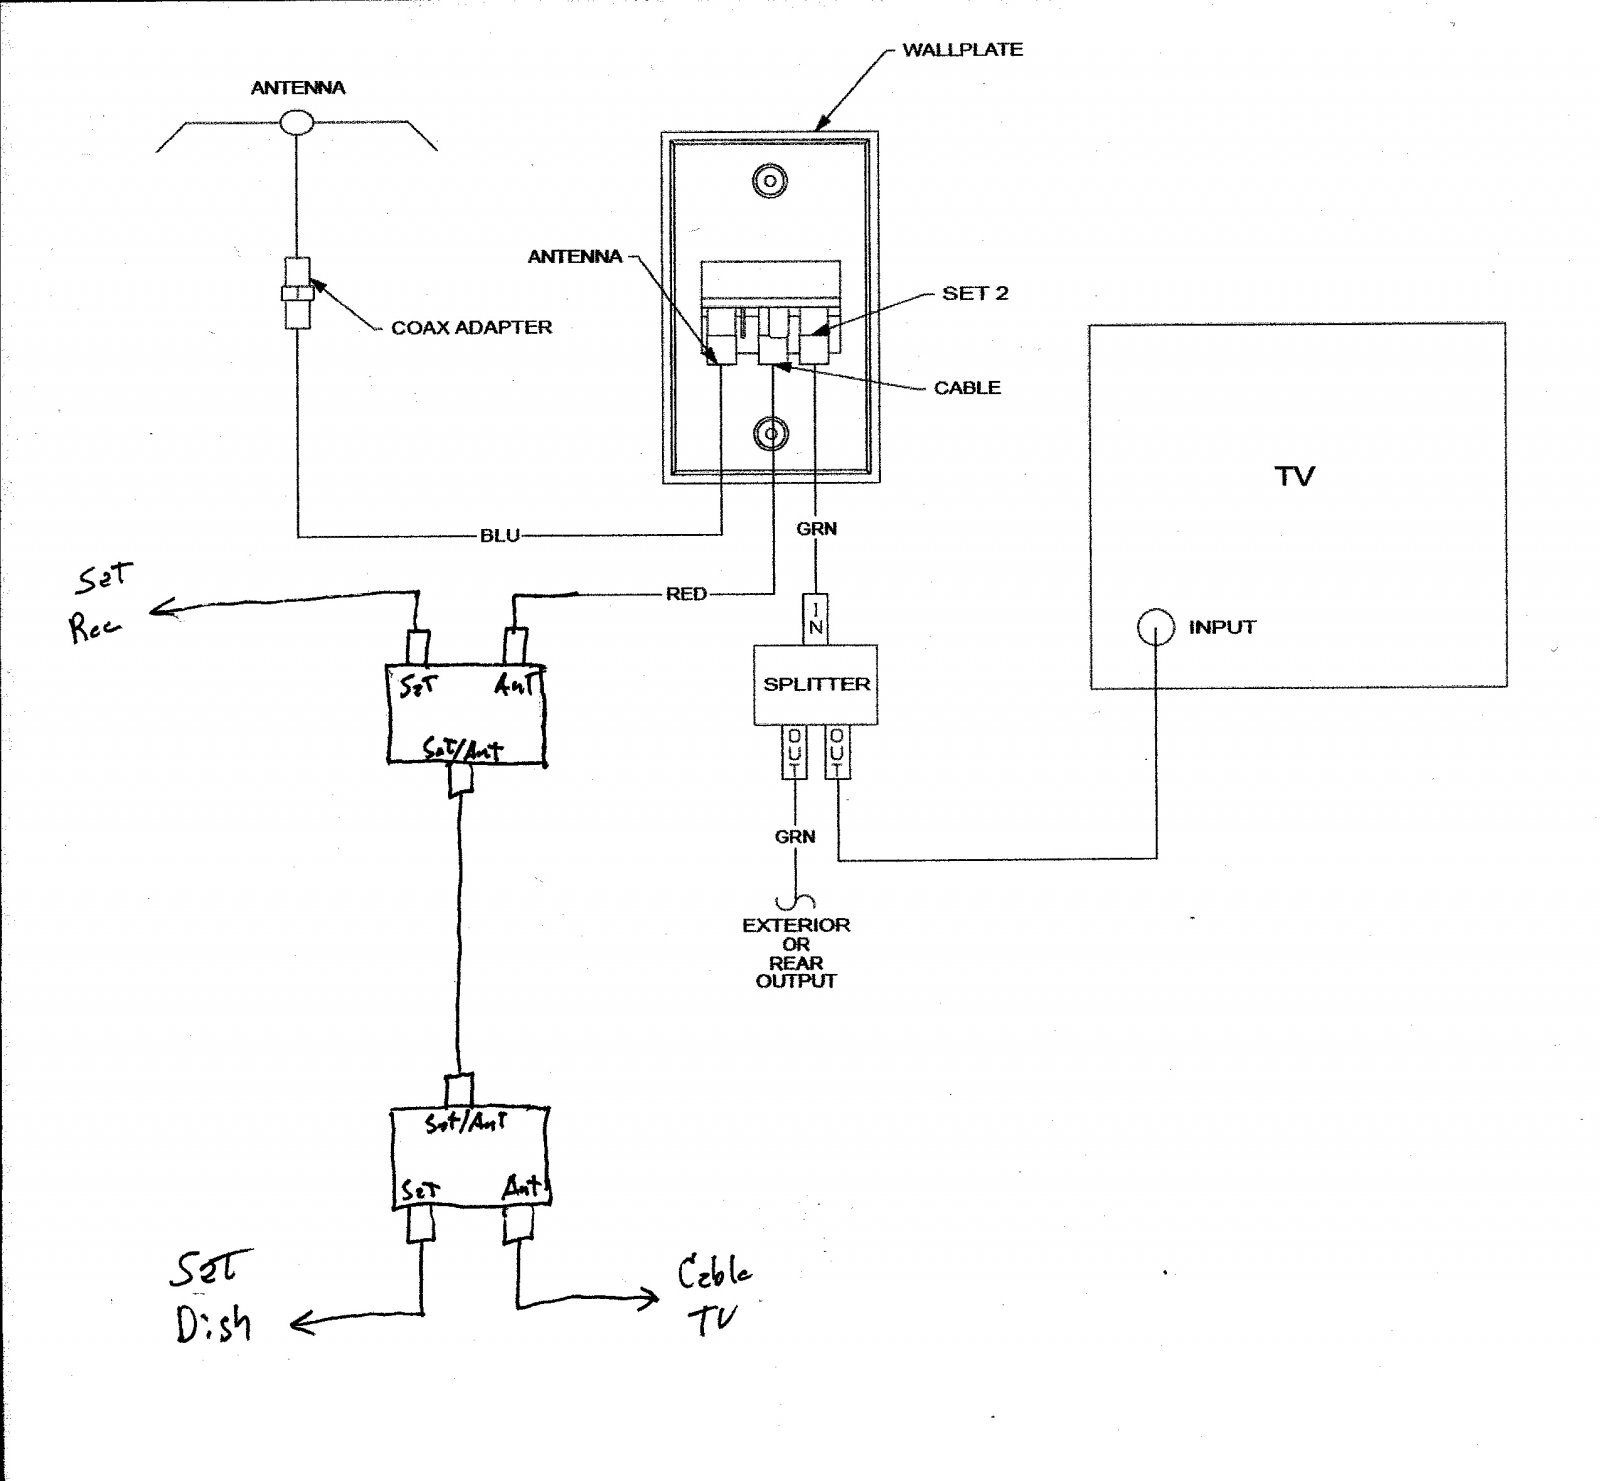 wiring diagram for motorhome electrical house rv cable and satellite collection